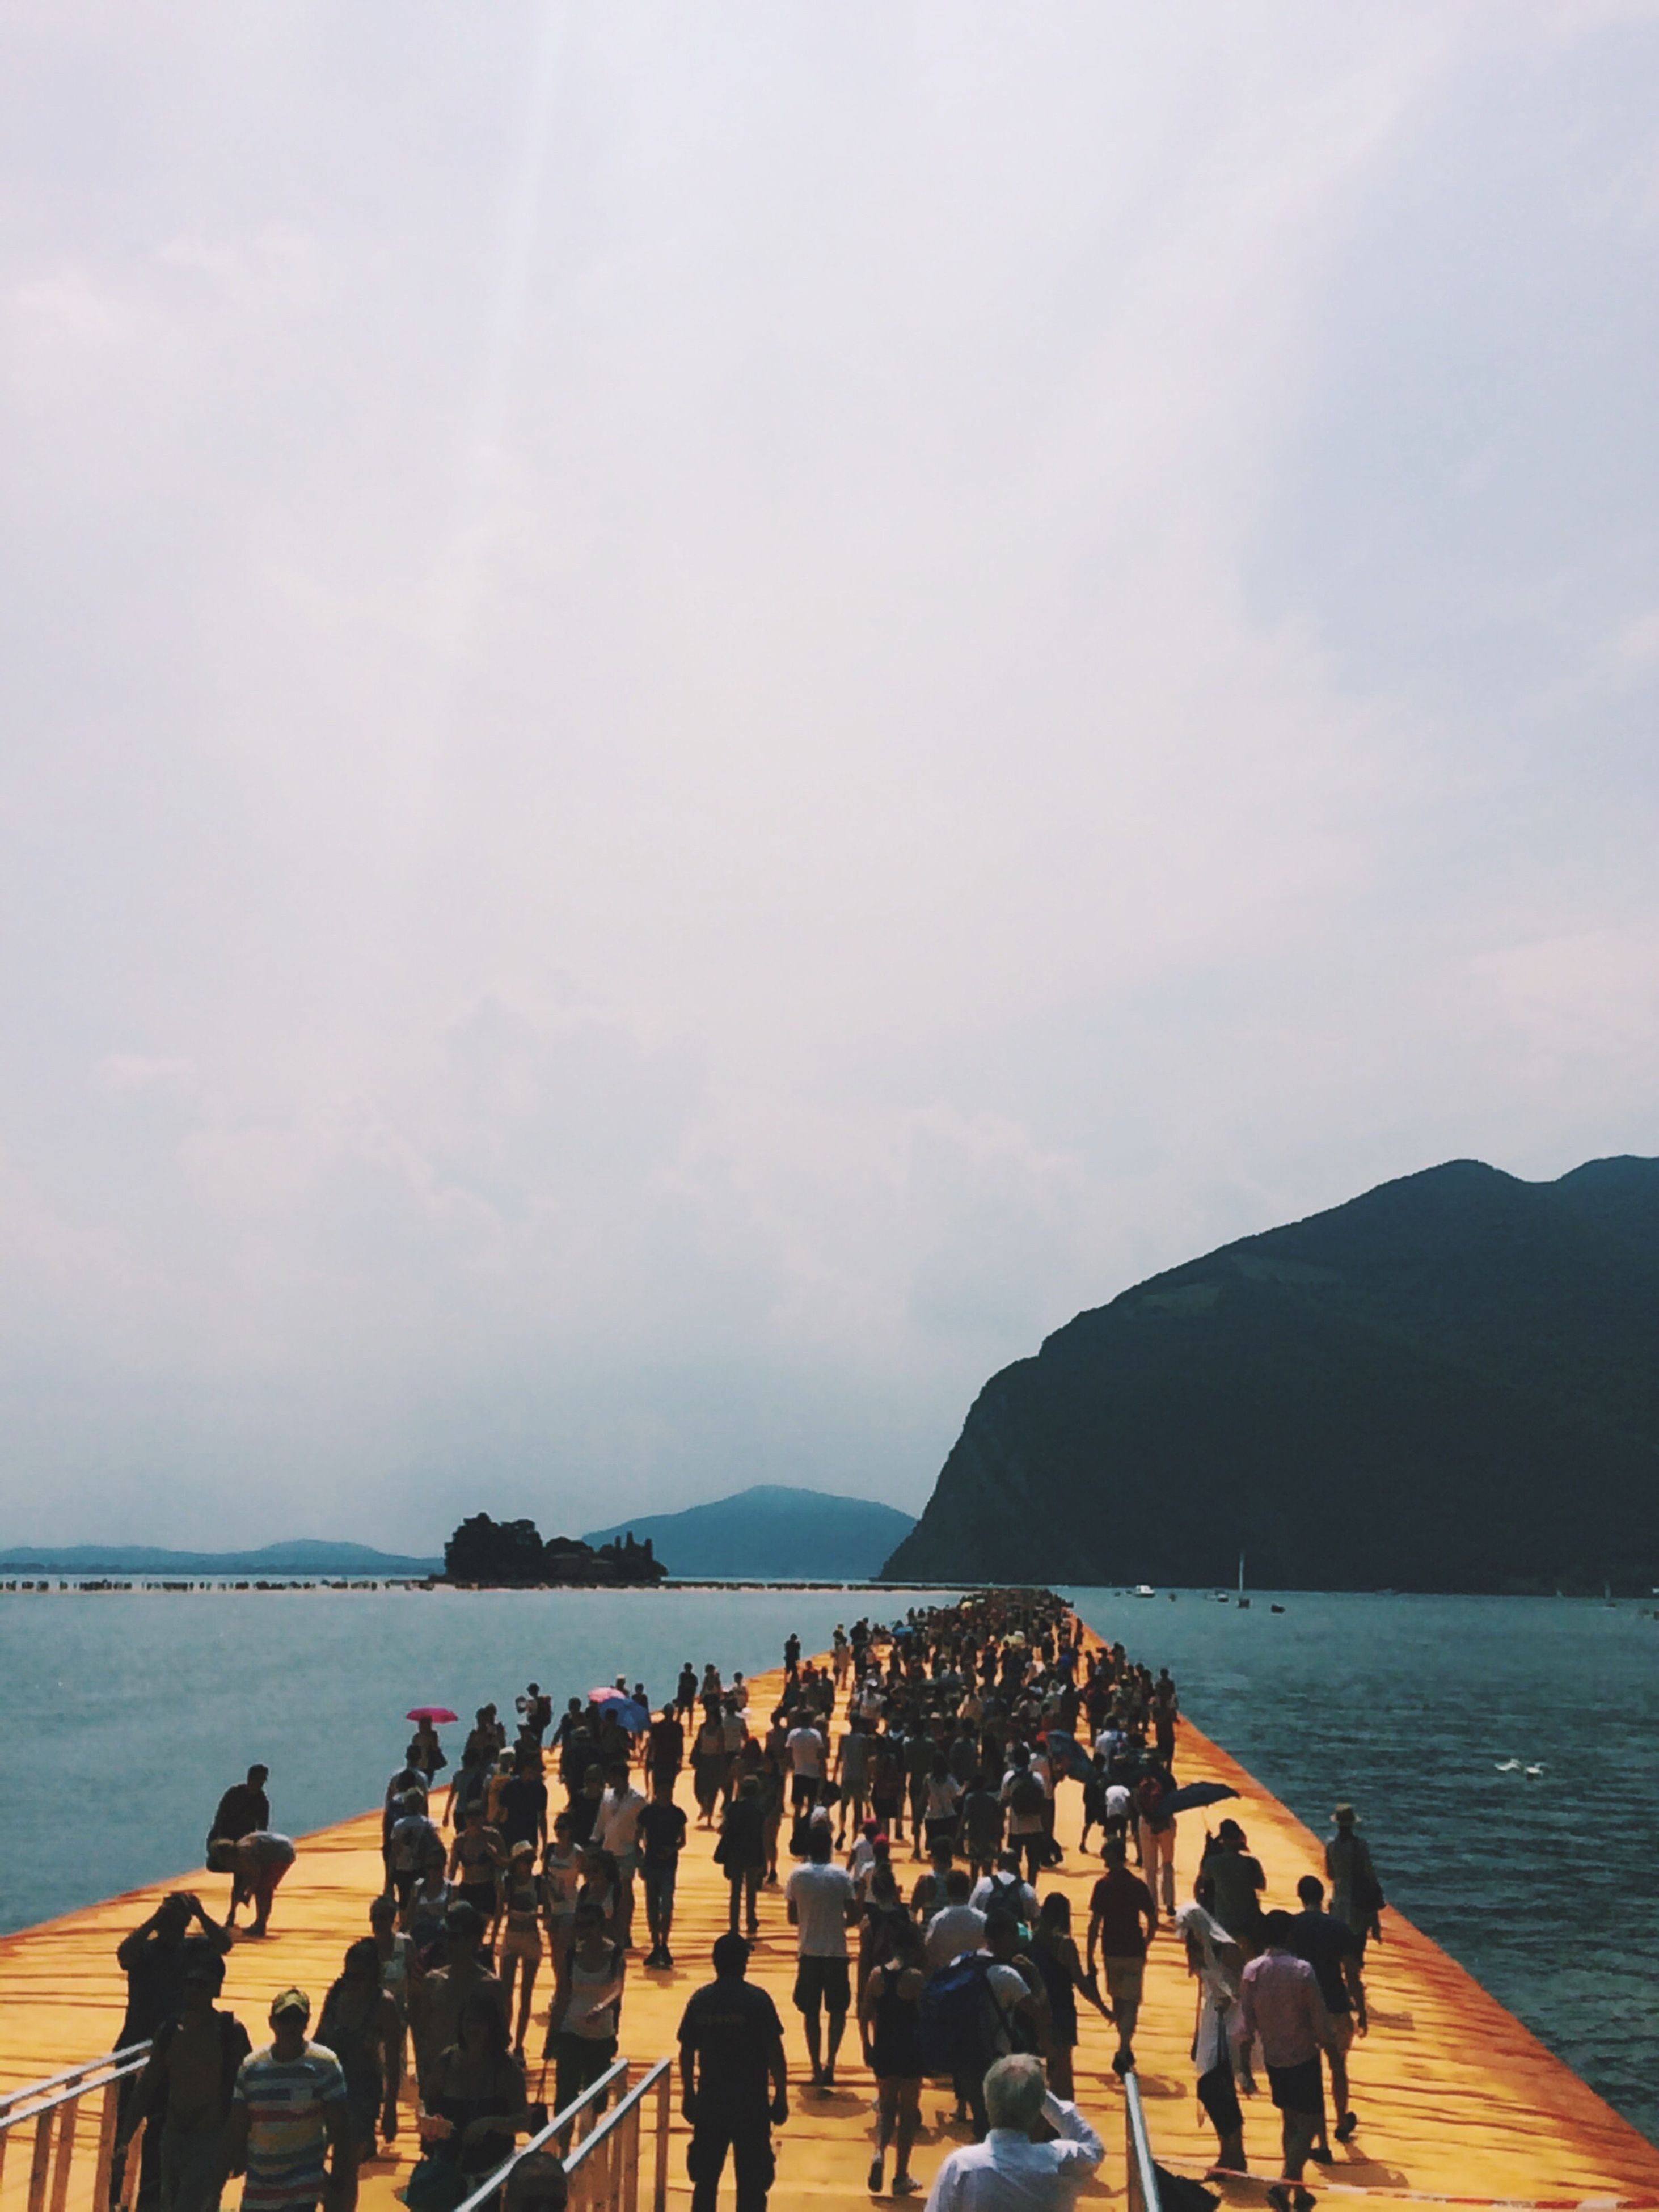 water, sea, large group of people, sky, person, lifestyles, men, leisure activity, mountain, vacations, tourist, beach, mixed age range, scenics, nature, cloud - sky, outdoors, day, beauty in nature